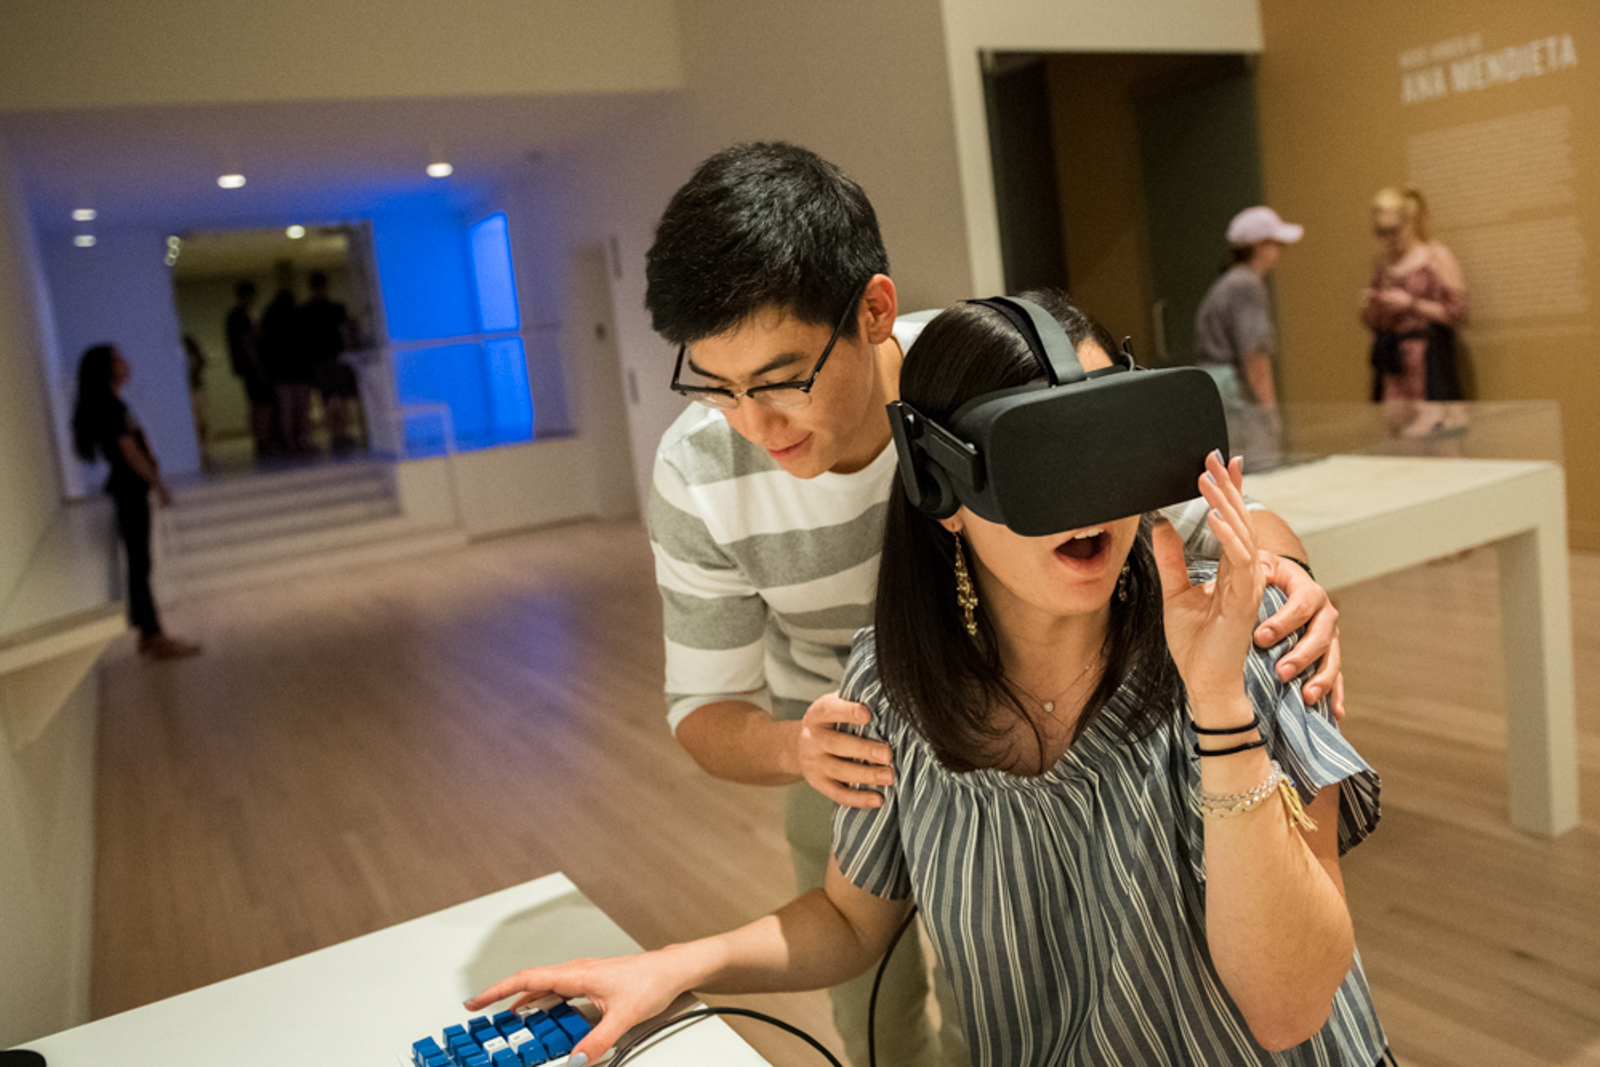 Shot of two students, one of them is trying on virtual reality glasses